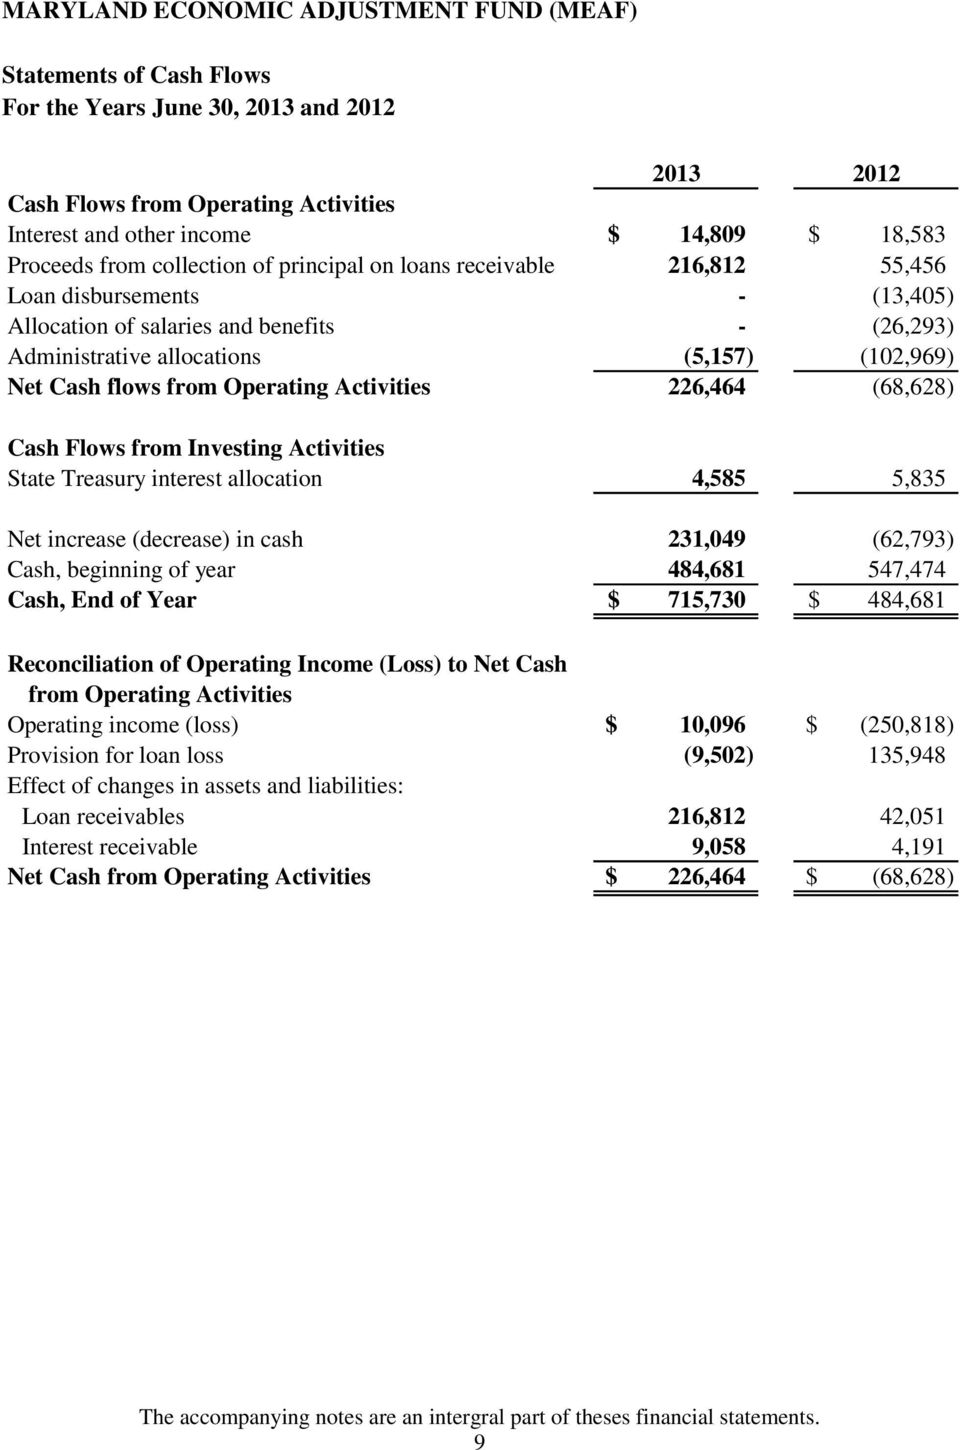 from Investing Activities State Treasury interest allocation 4,585 5,835 Net increase (decrease) in cash 231,049 (62,793) Cash, beginning of year 484,681 547,474 Cash, End of Year $ 715,730 $ 484,681